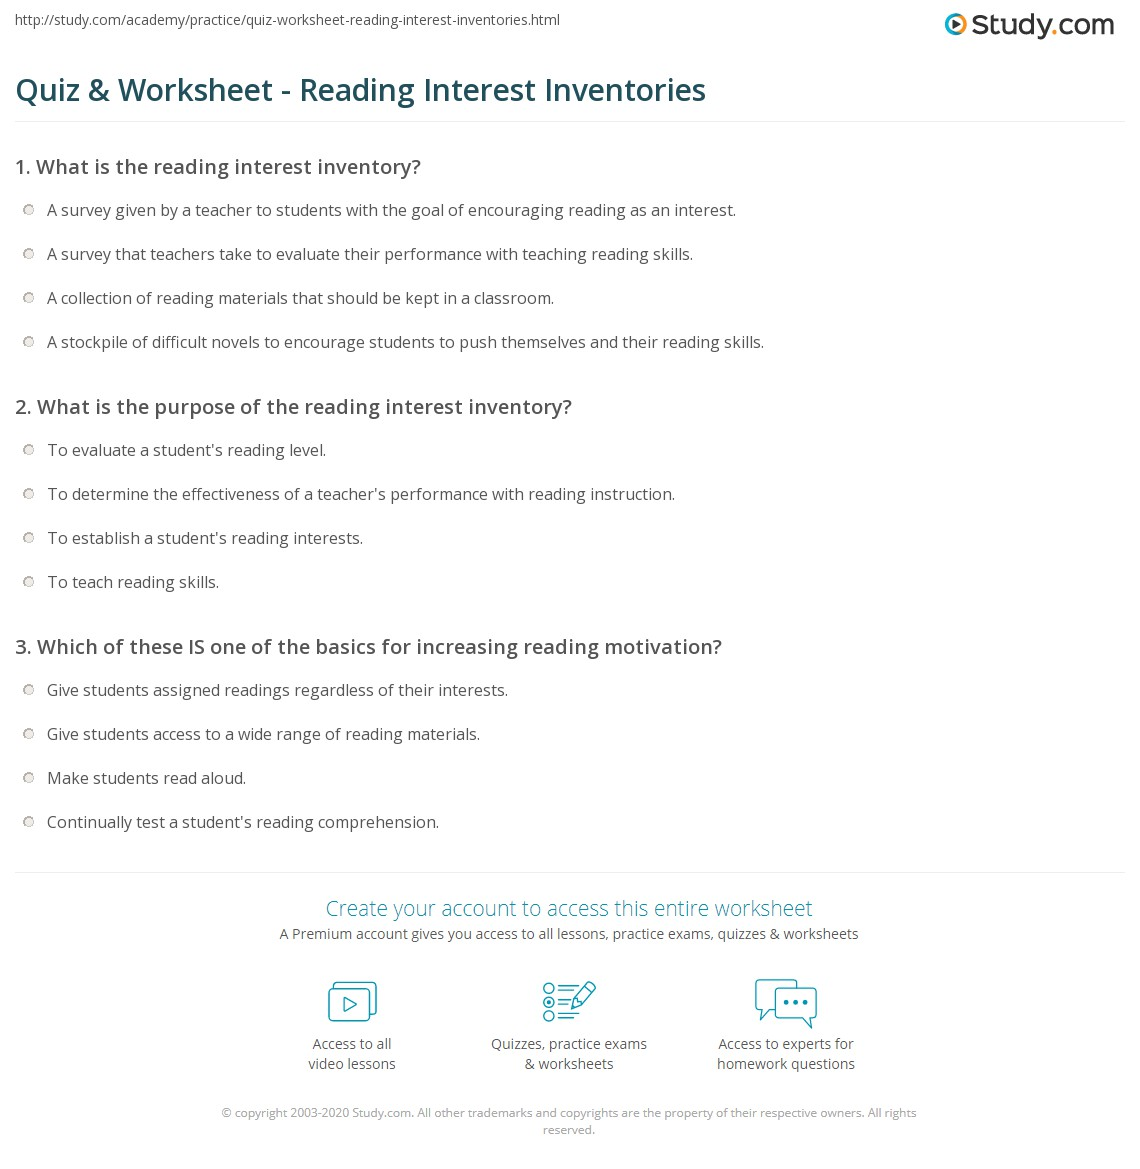 Quiz & Worksheet - Reading Interest Inventories | Study.com